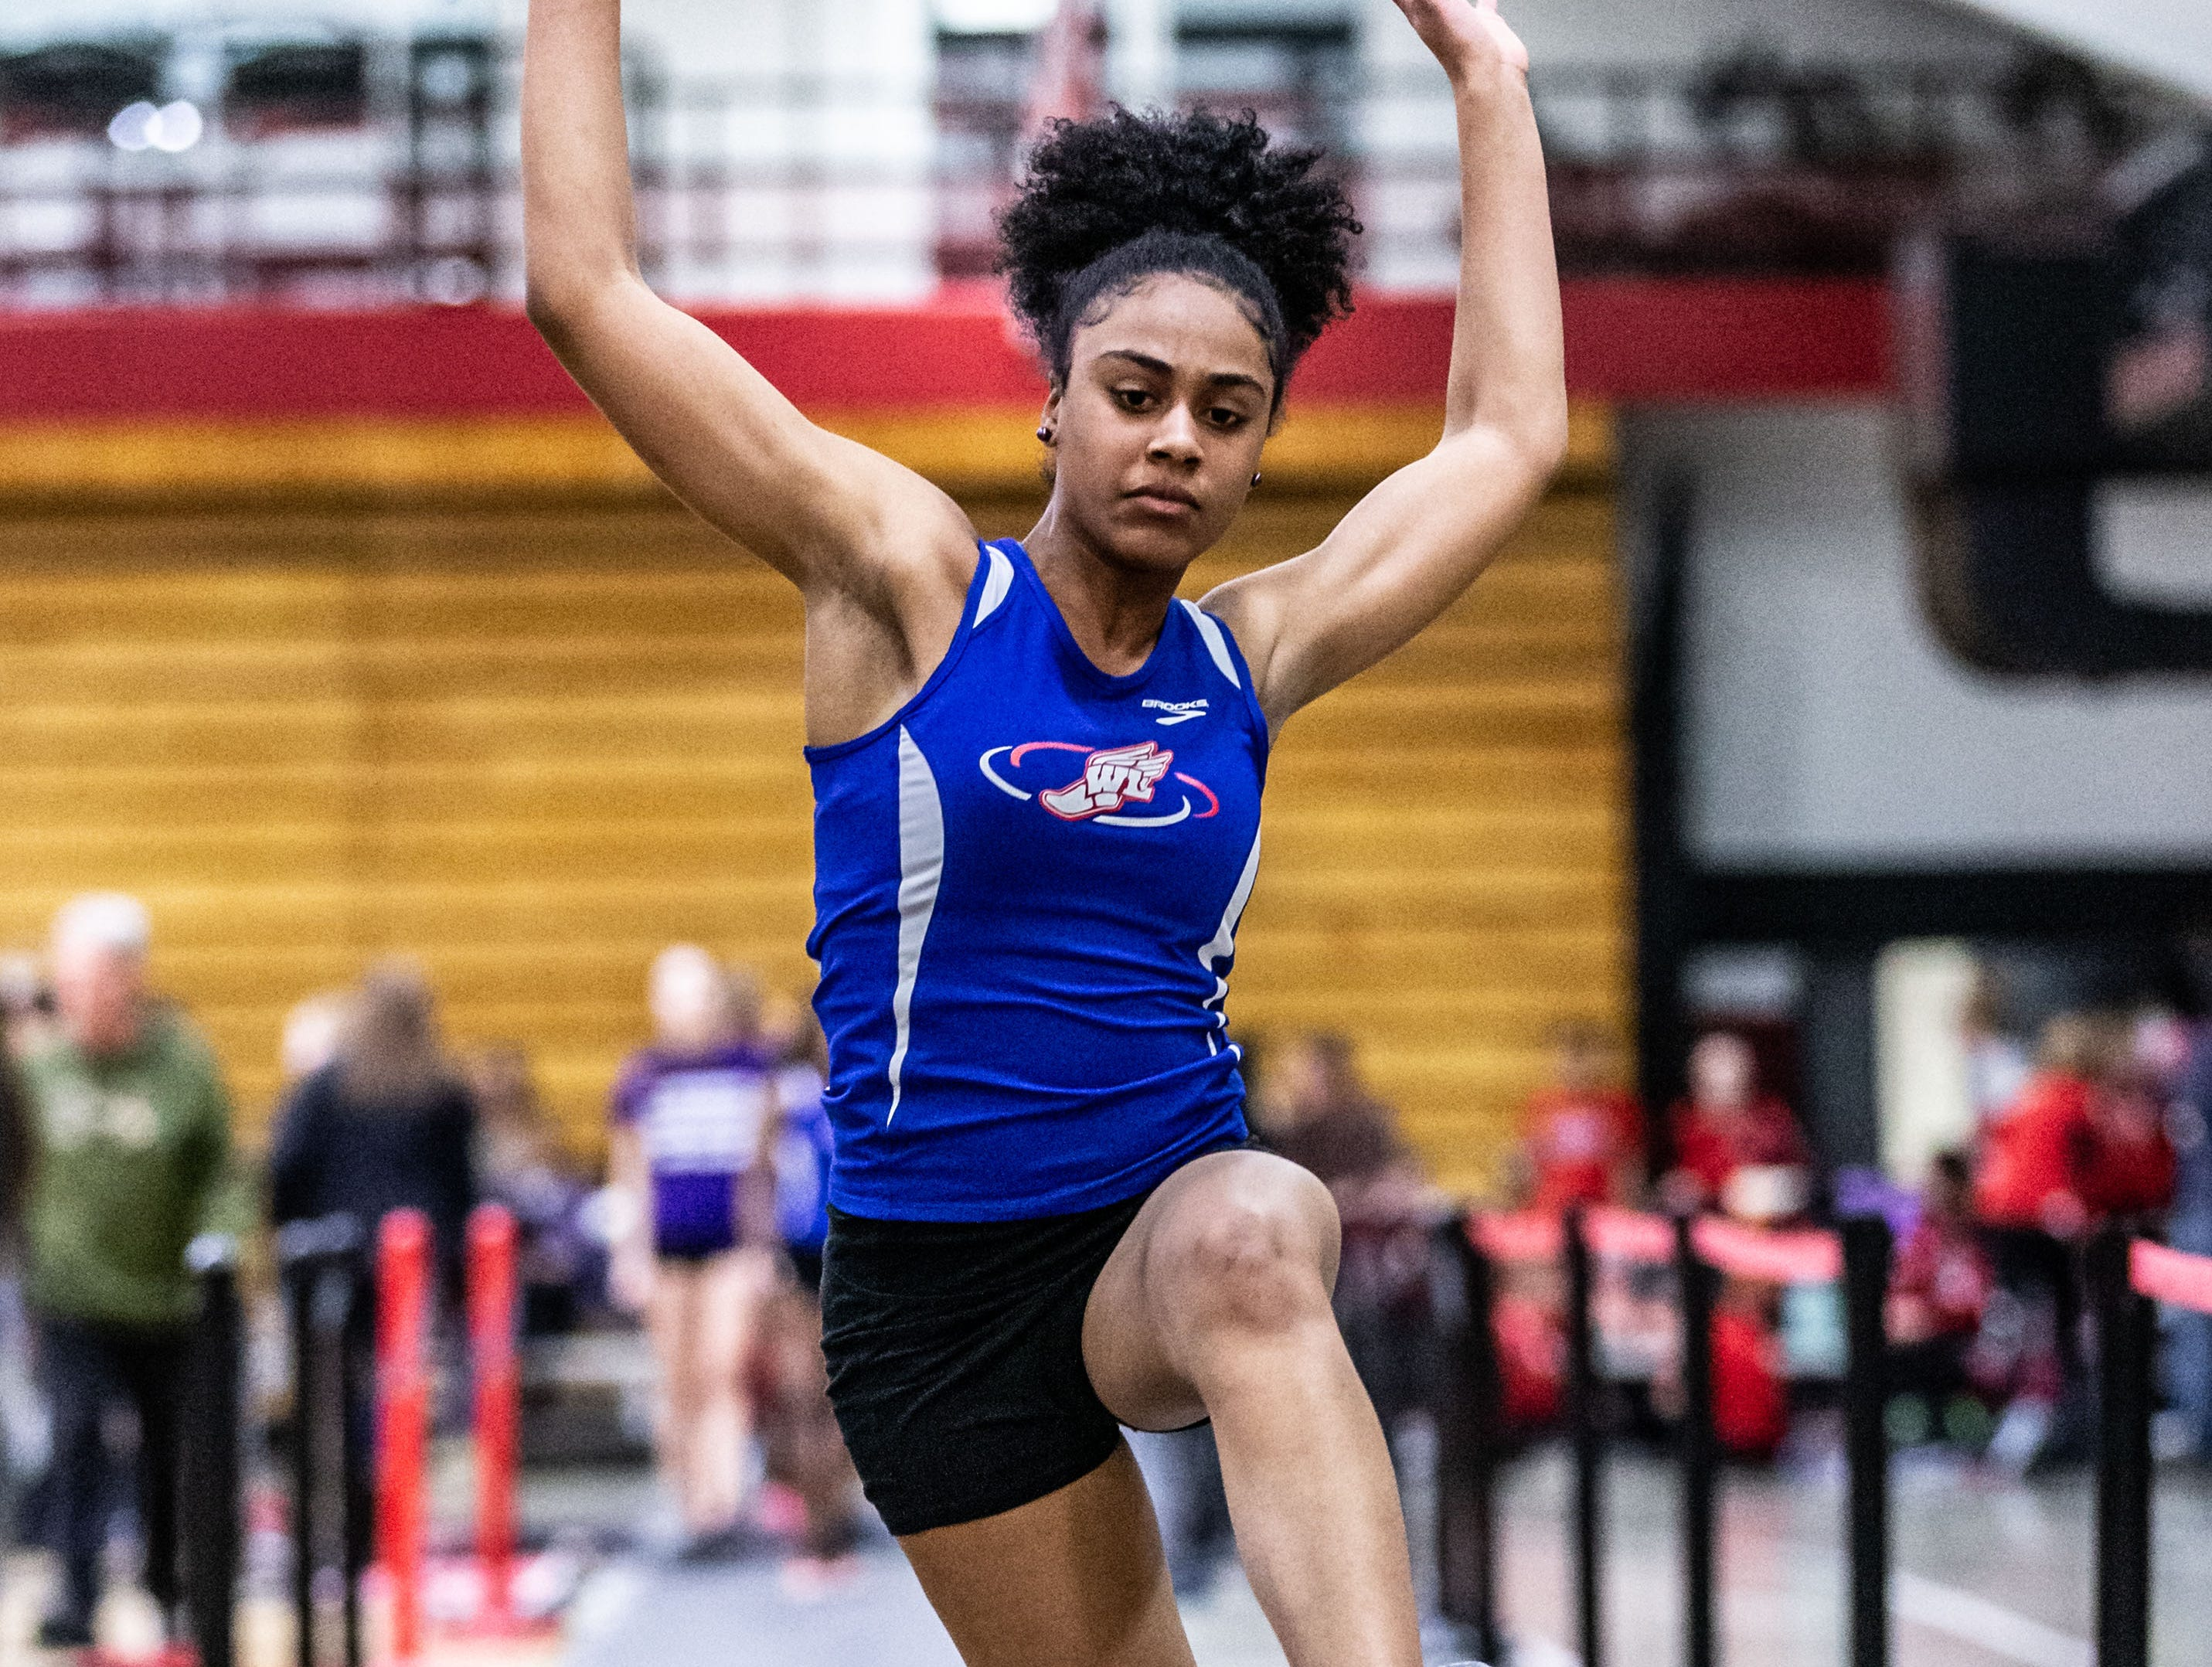 Wisconsin Lutheran's Maya Dorsey competes in the long jump at the Peter Rempe Cardinal Relays hosted by Waukesha South on Thursday, March 21, 2019.